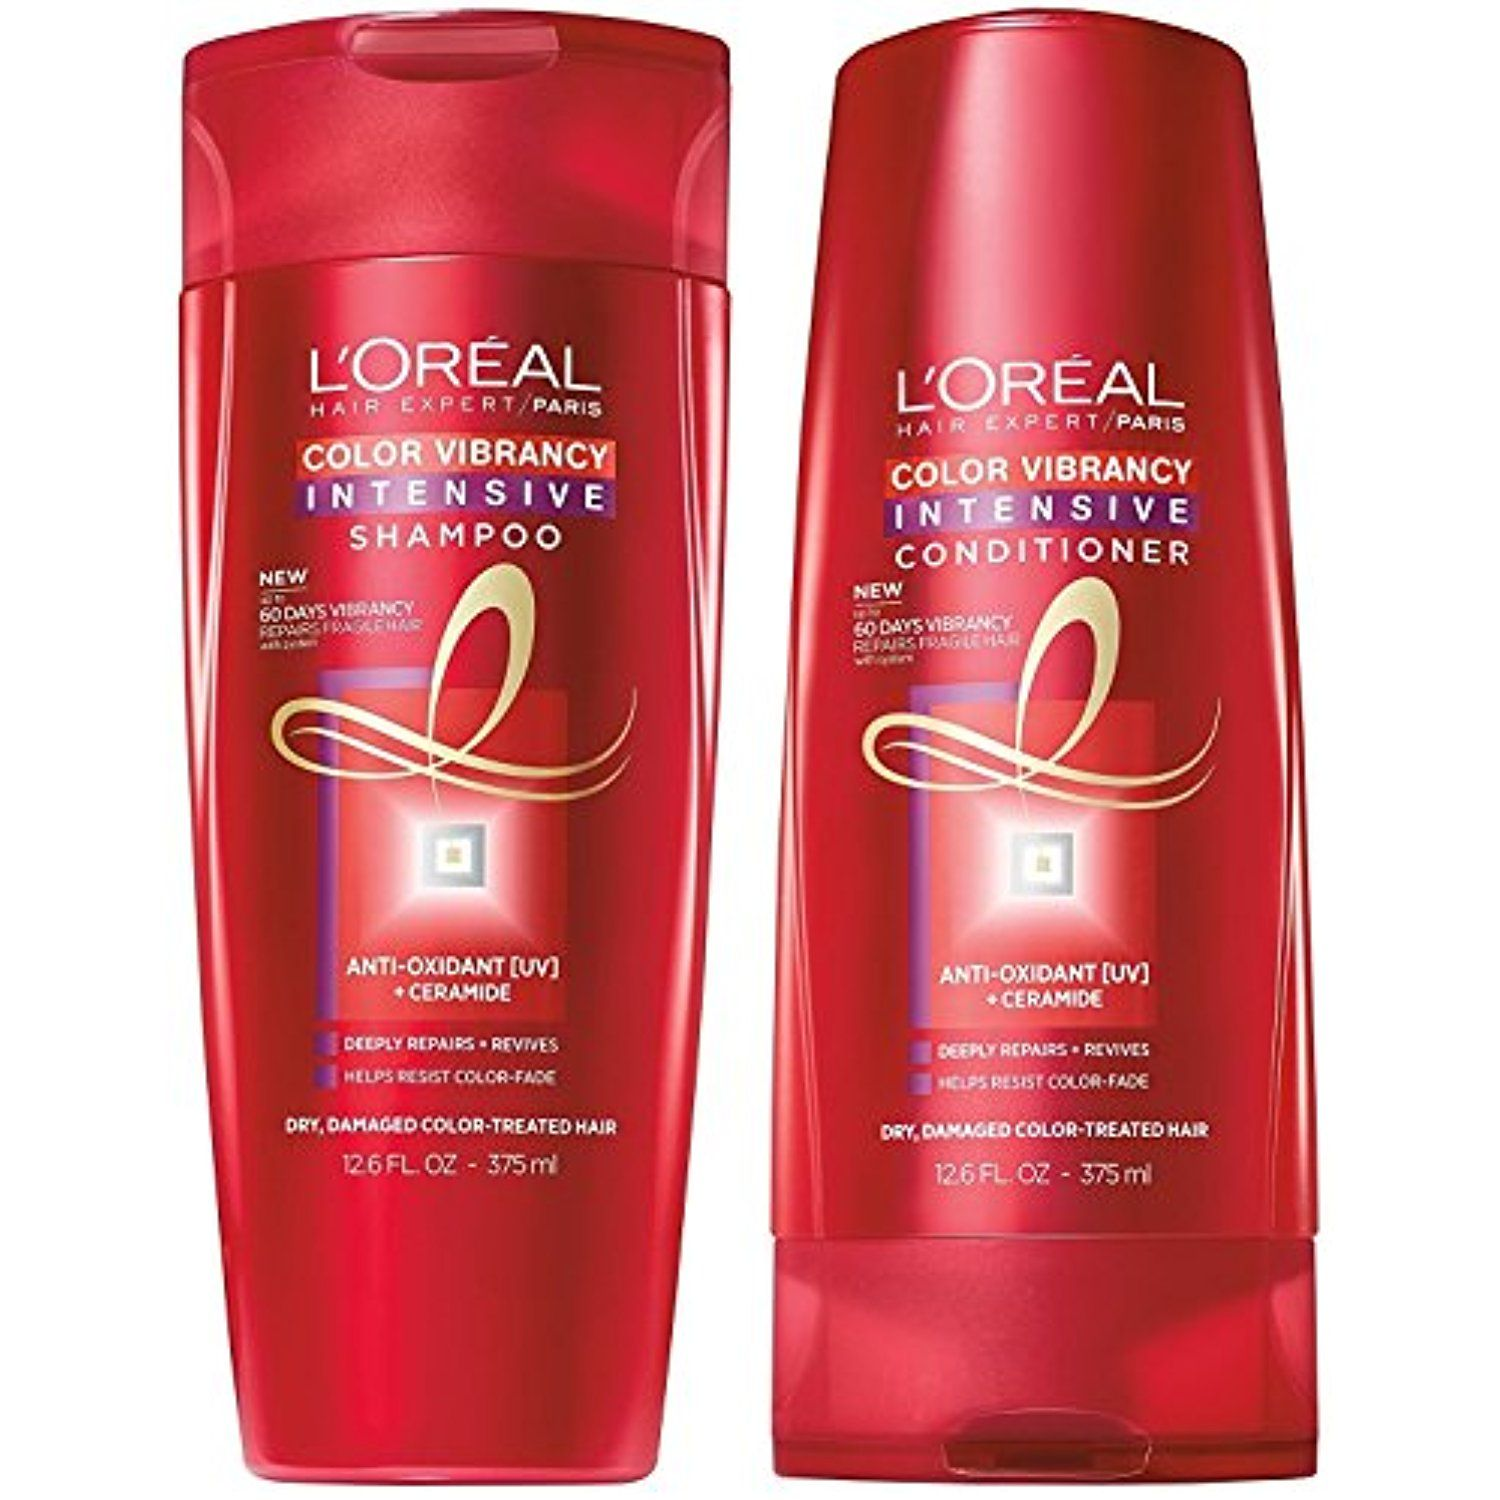 L Oreal Color Vibrancy Intensive Shampoo And Conditioner Set 12 6 Ounces Each Bundle 2 Items Shampoo Conditioner Set Drugstore Hair Products Shampoo